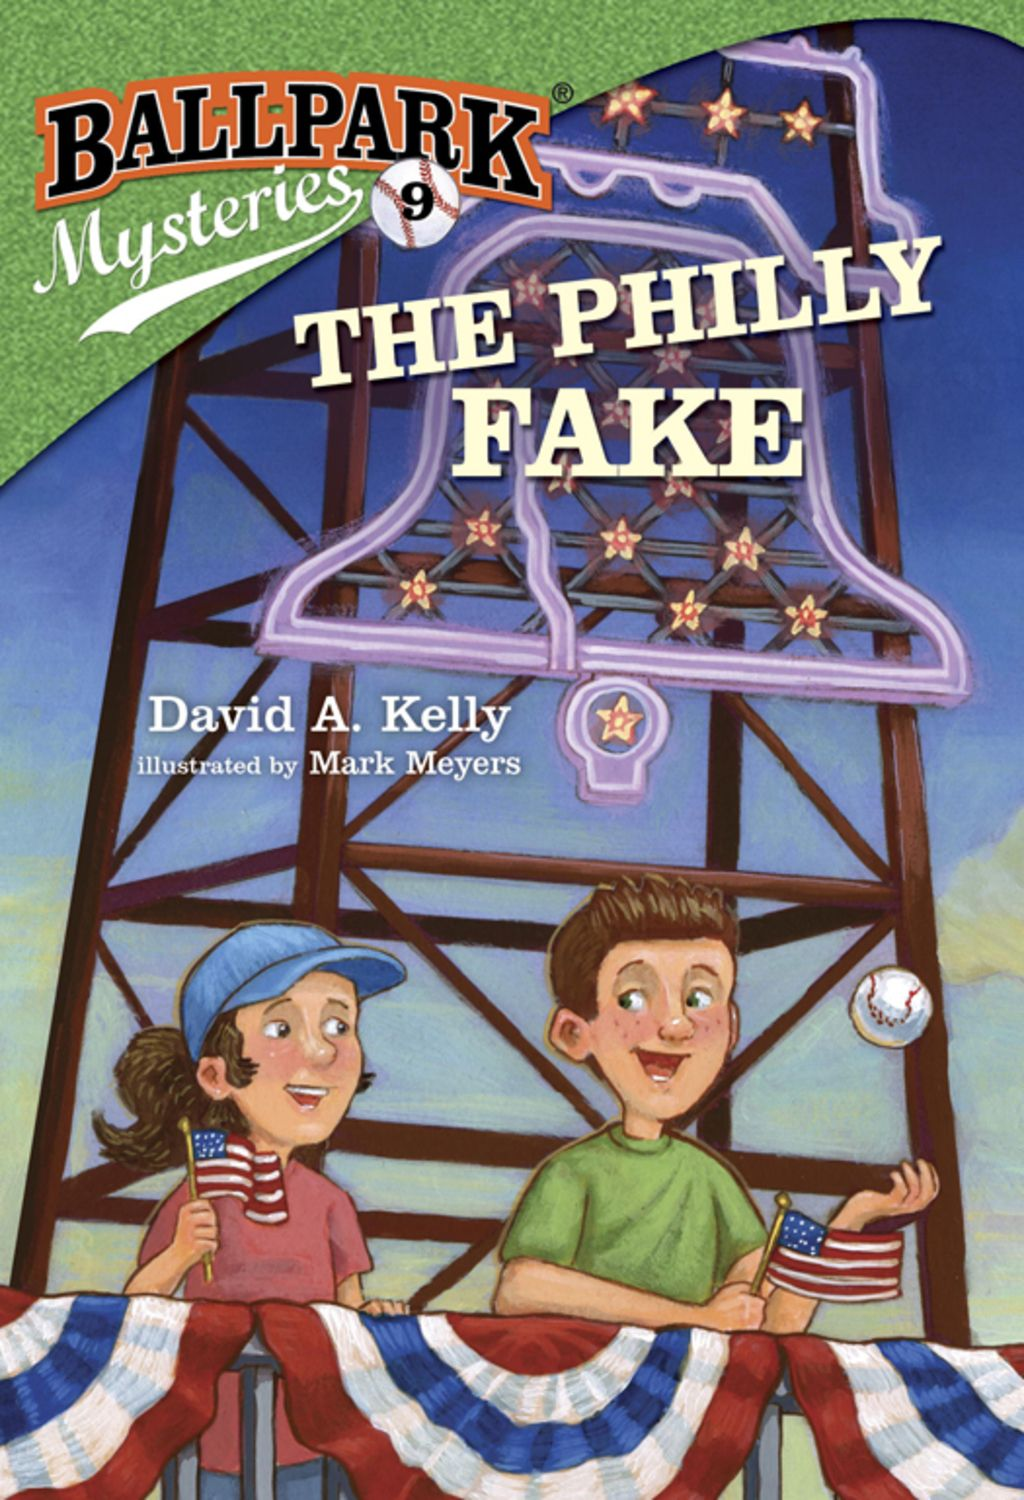 Ballpark mysteries 9 the philly fake ebook easy